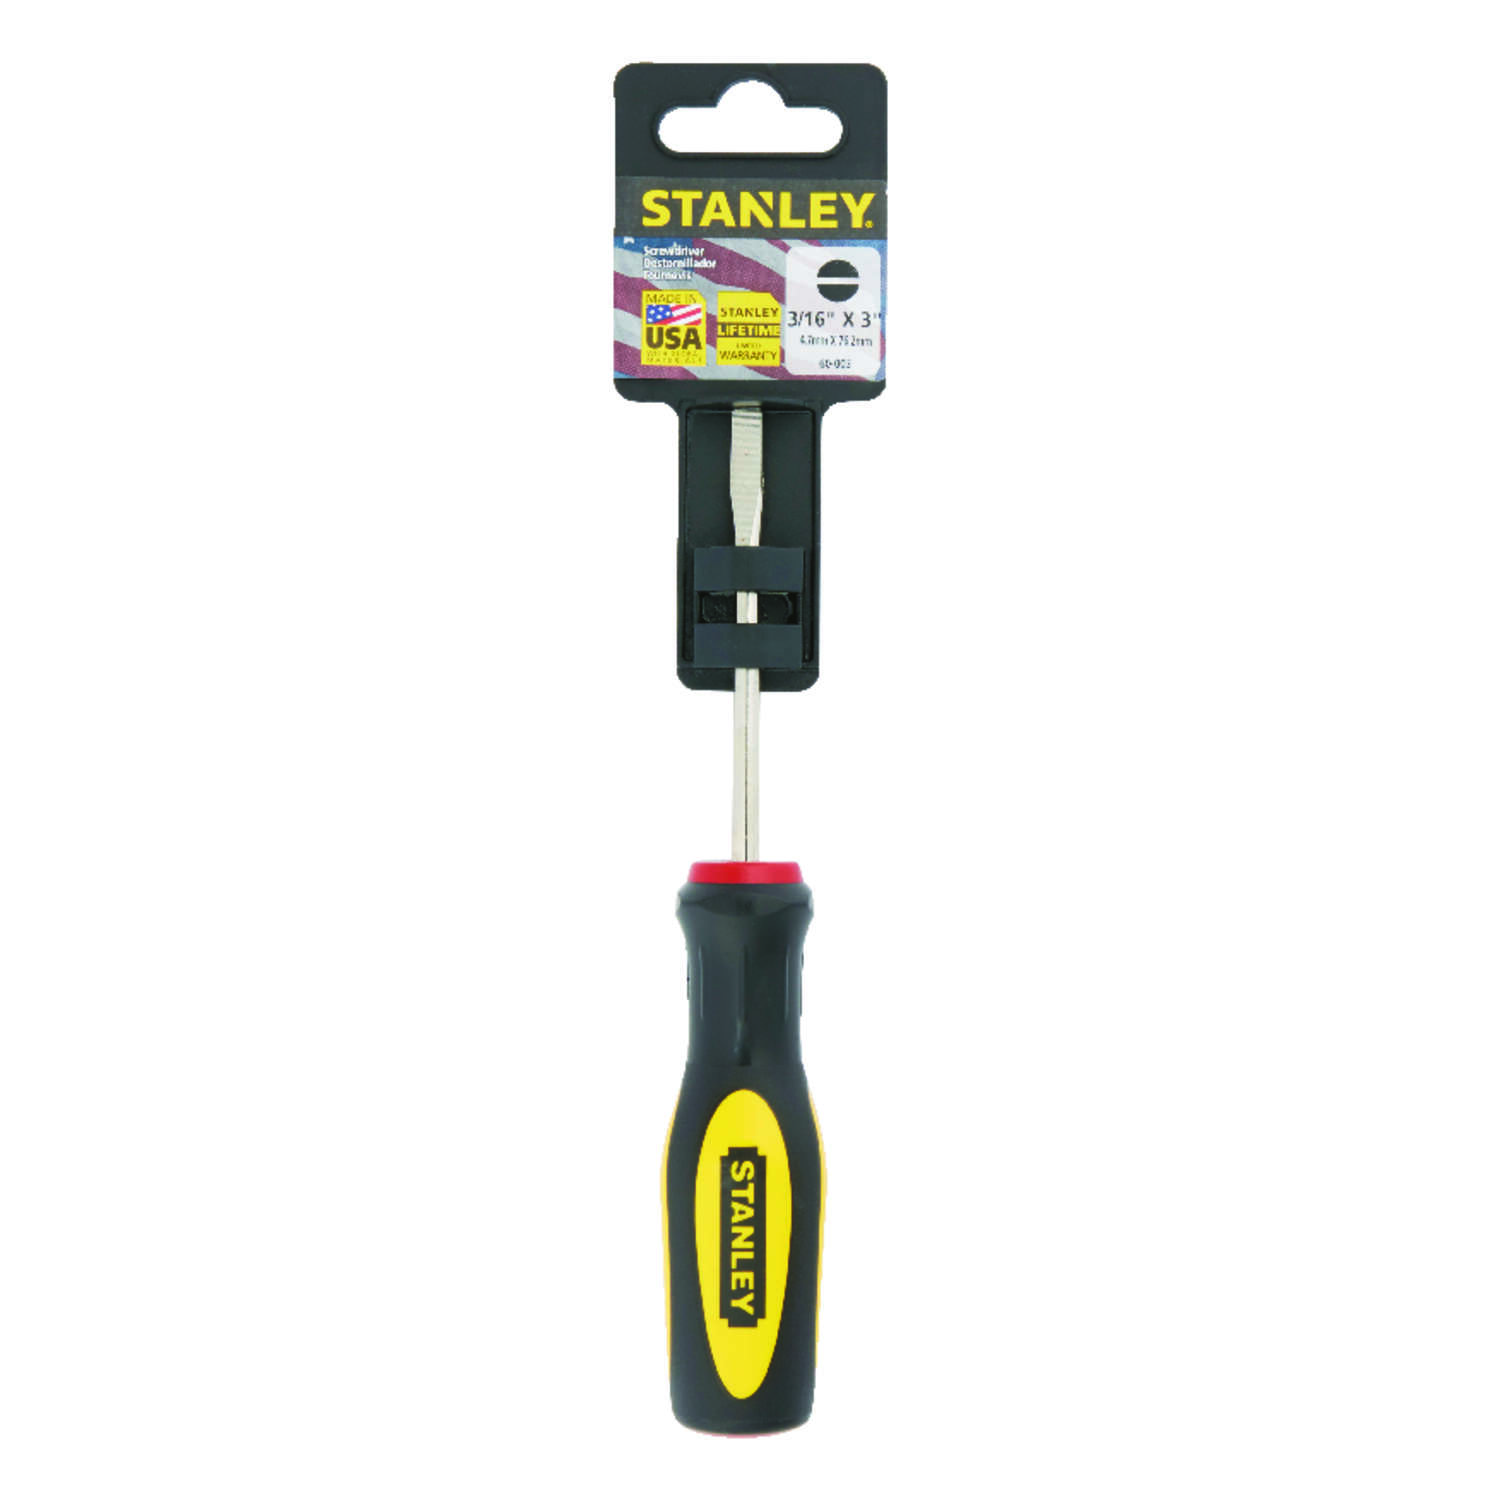 Stanley  3 in. Fluted Cabinet Slotted  Screwdriver  Steel  Yellow  1 EA 3/16